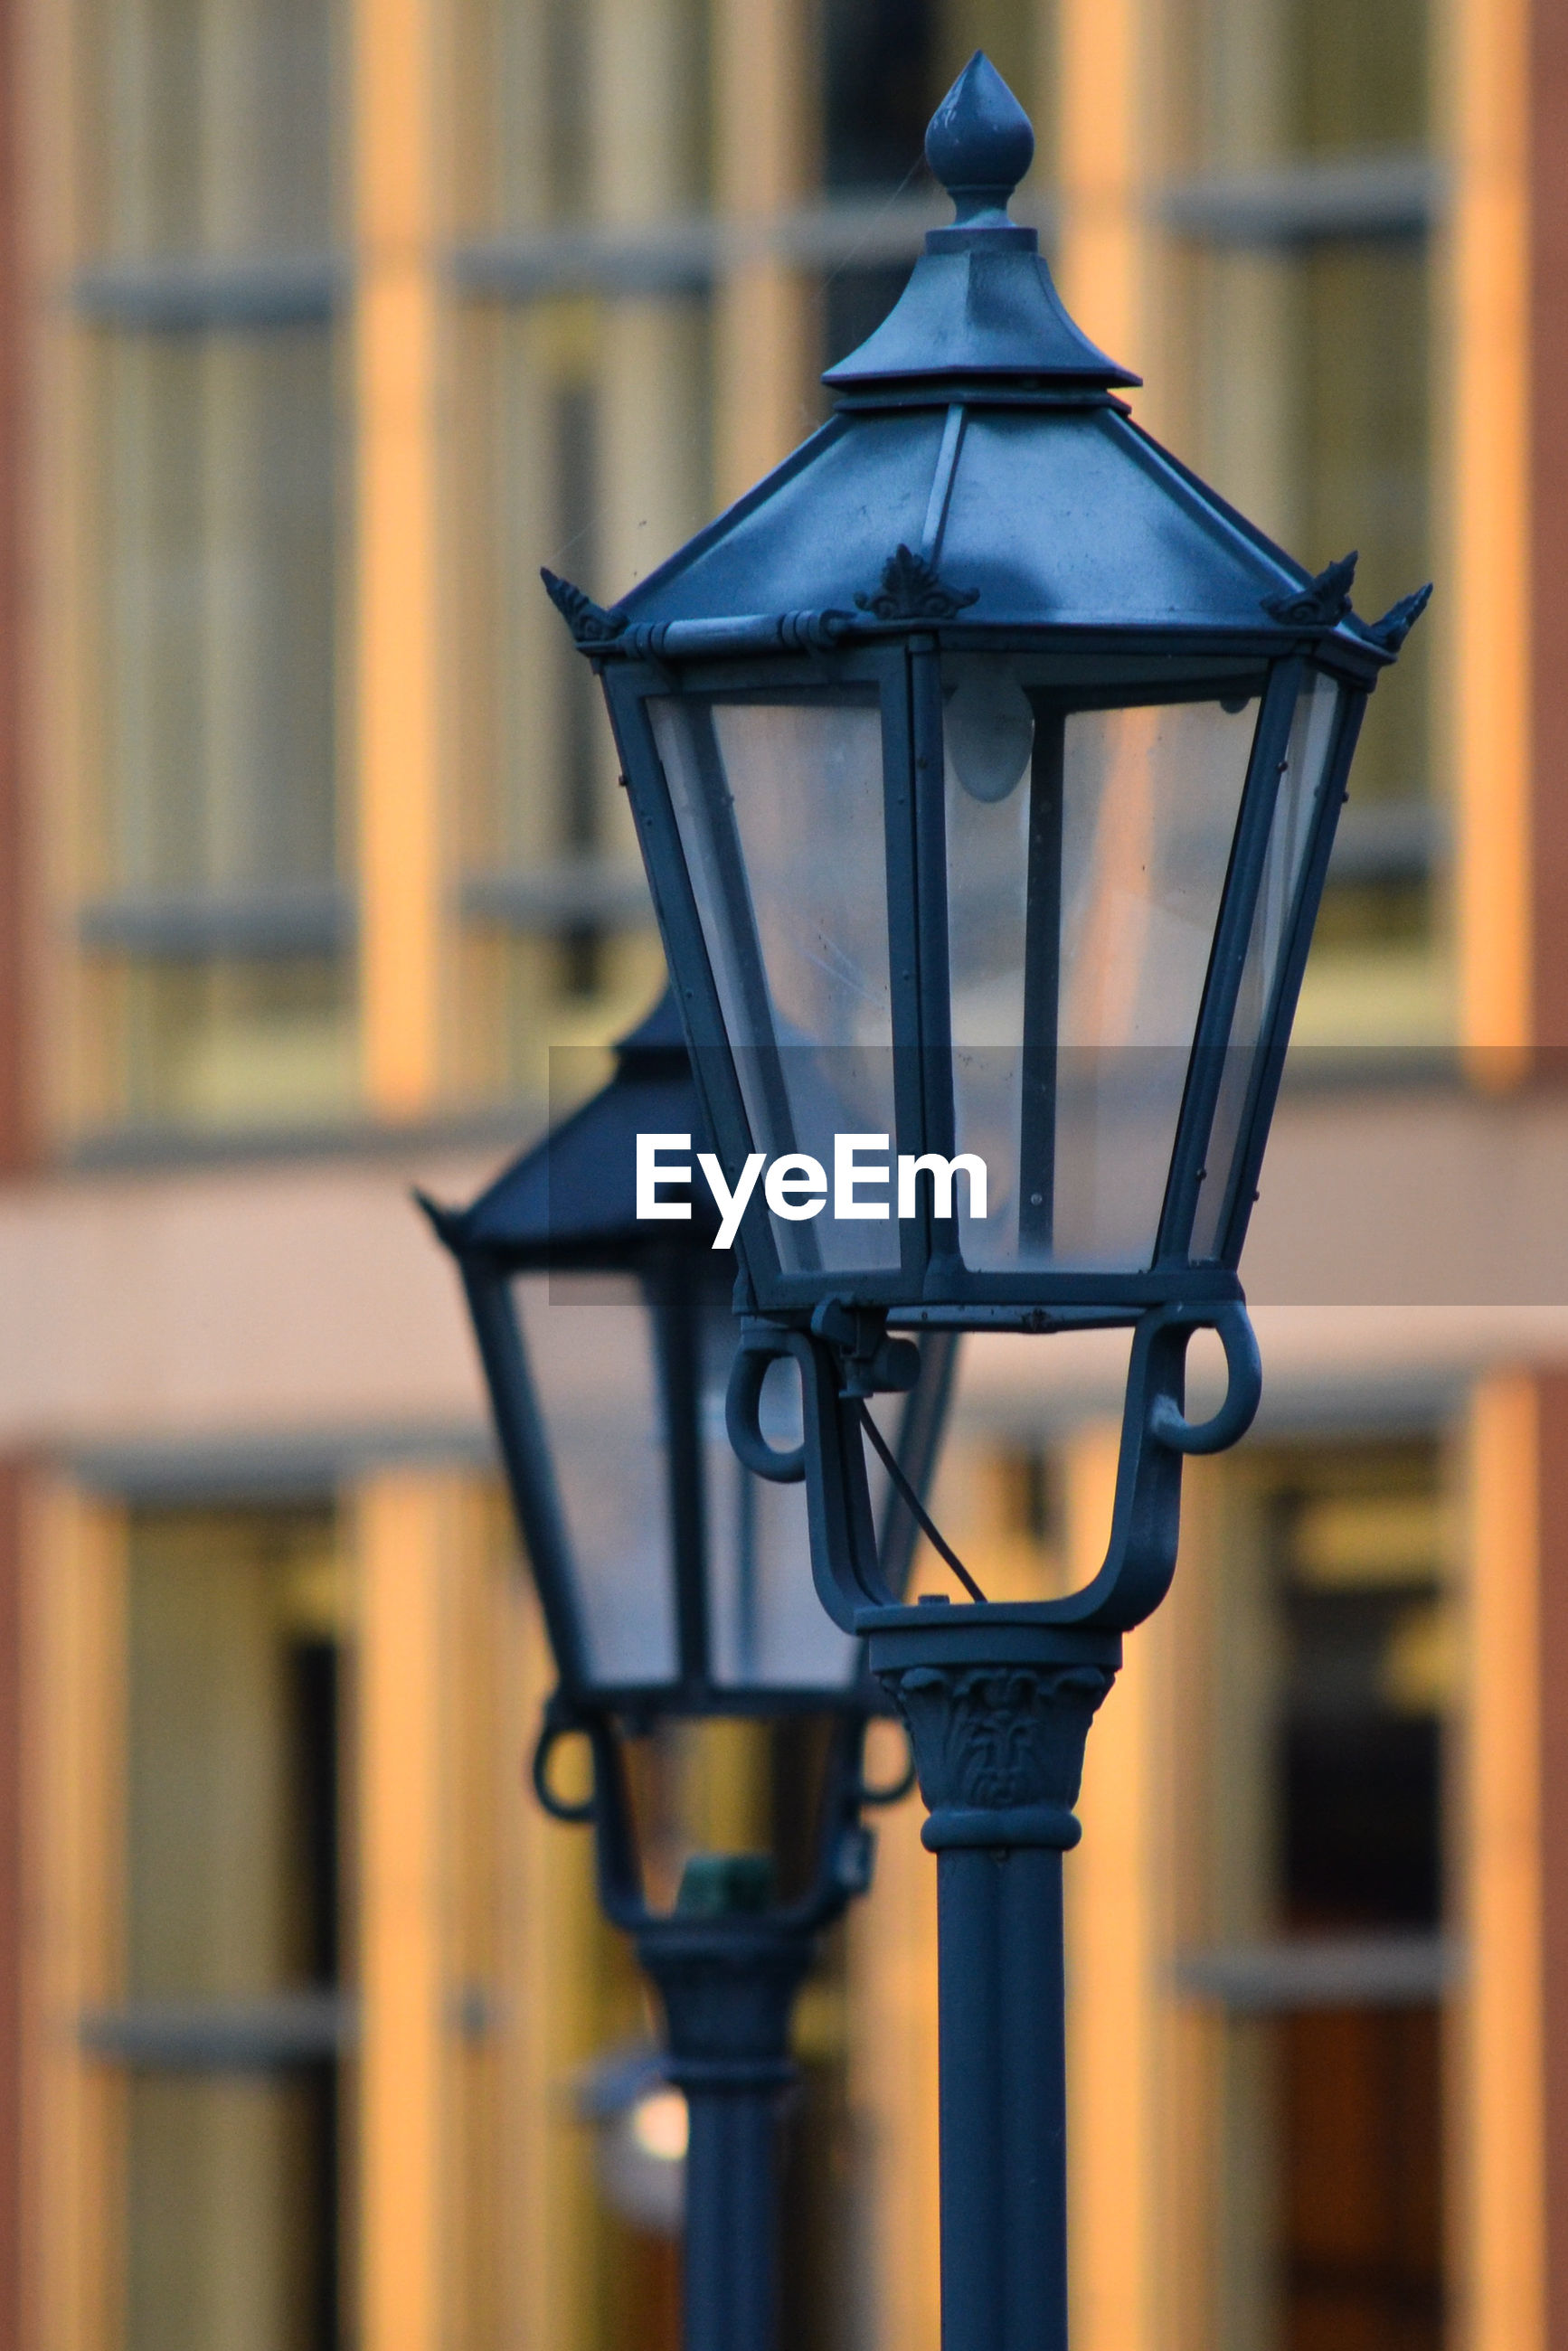 CLOSE-UP OF STREET LIGHT BY BUILDING